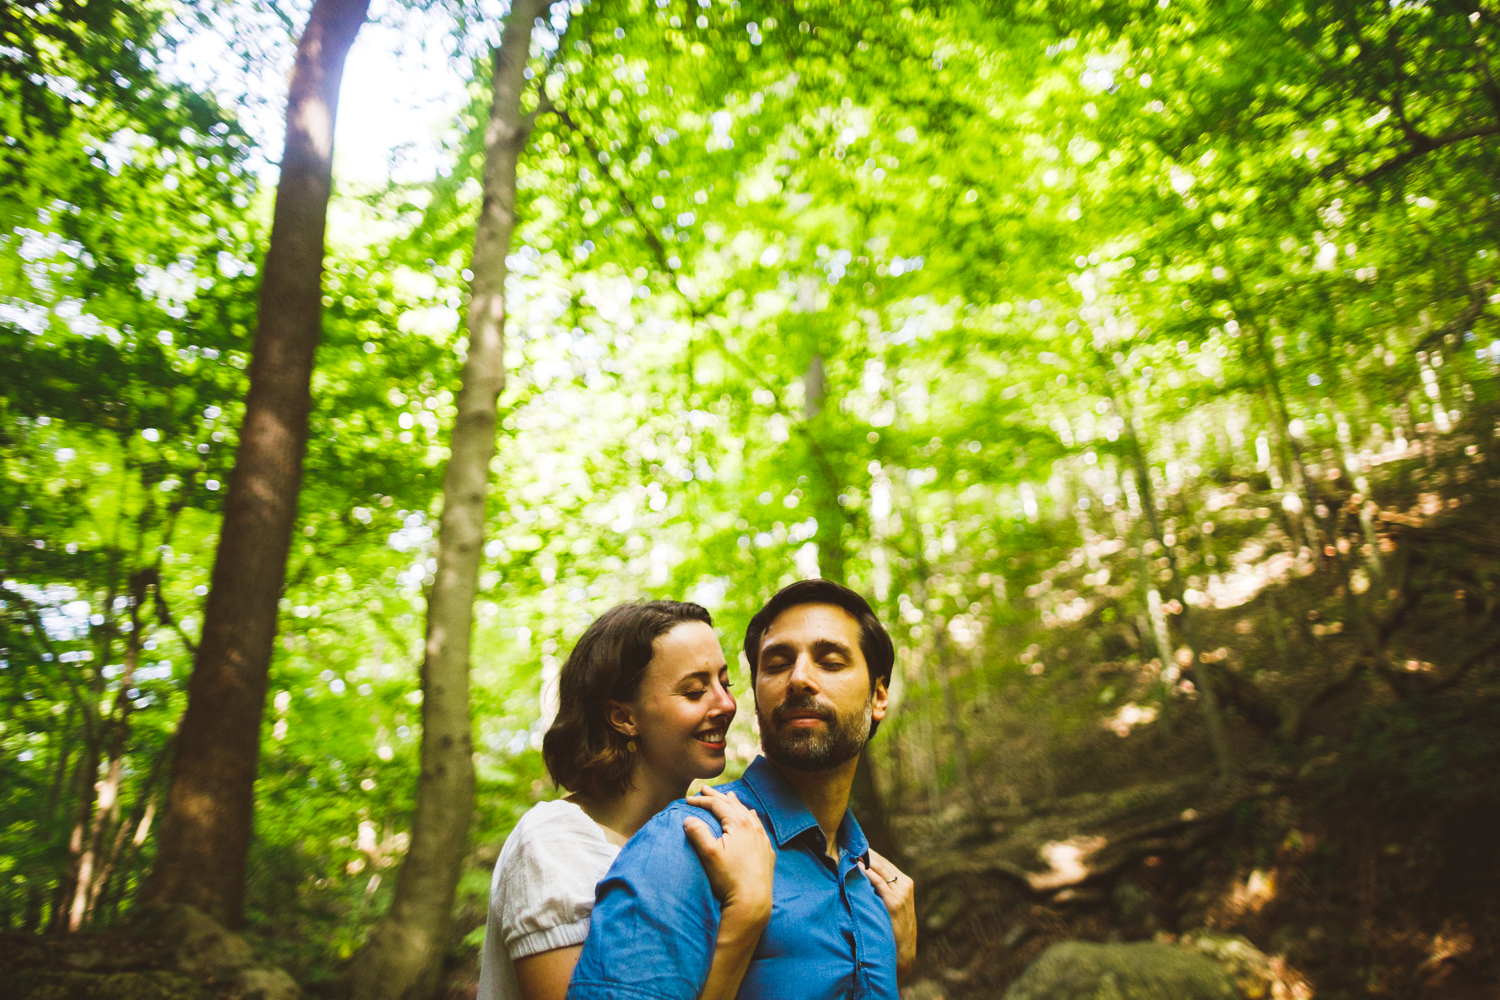 008 - woman hugs man on their engagement session in a maryland state park.jpg